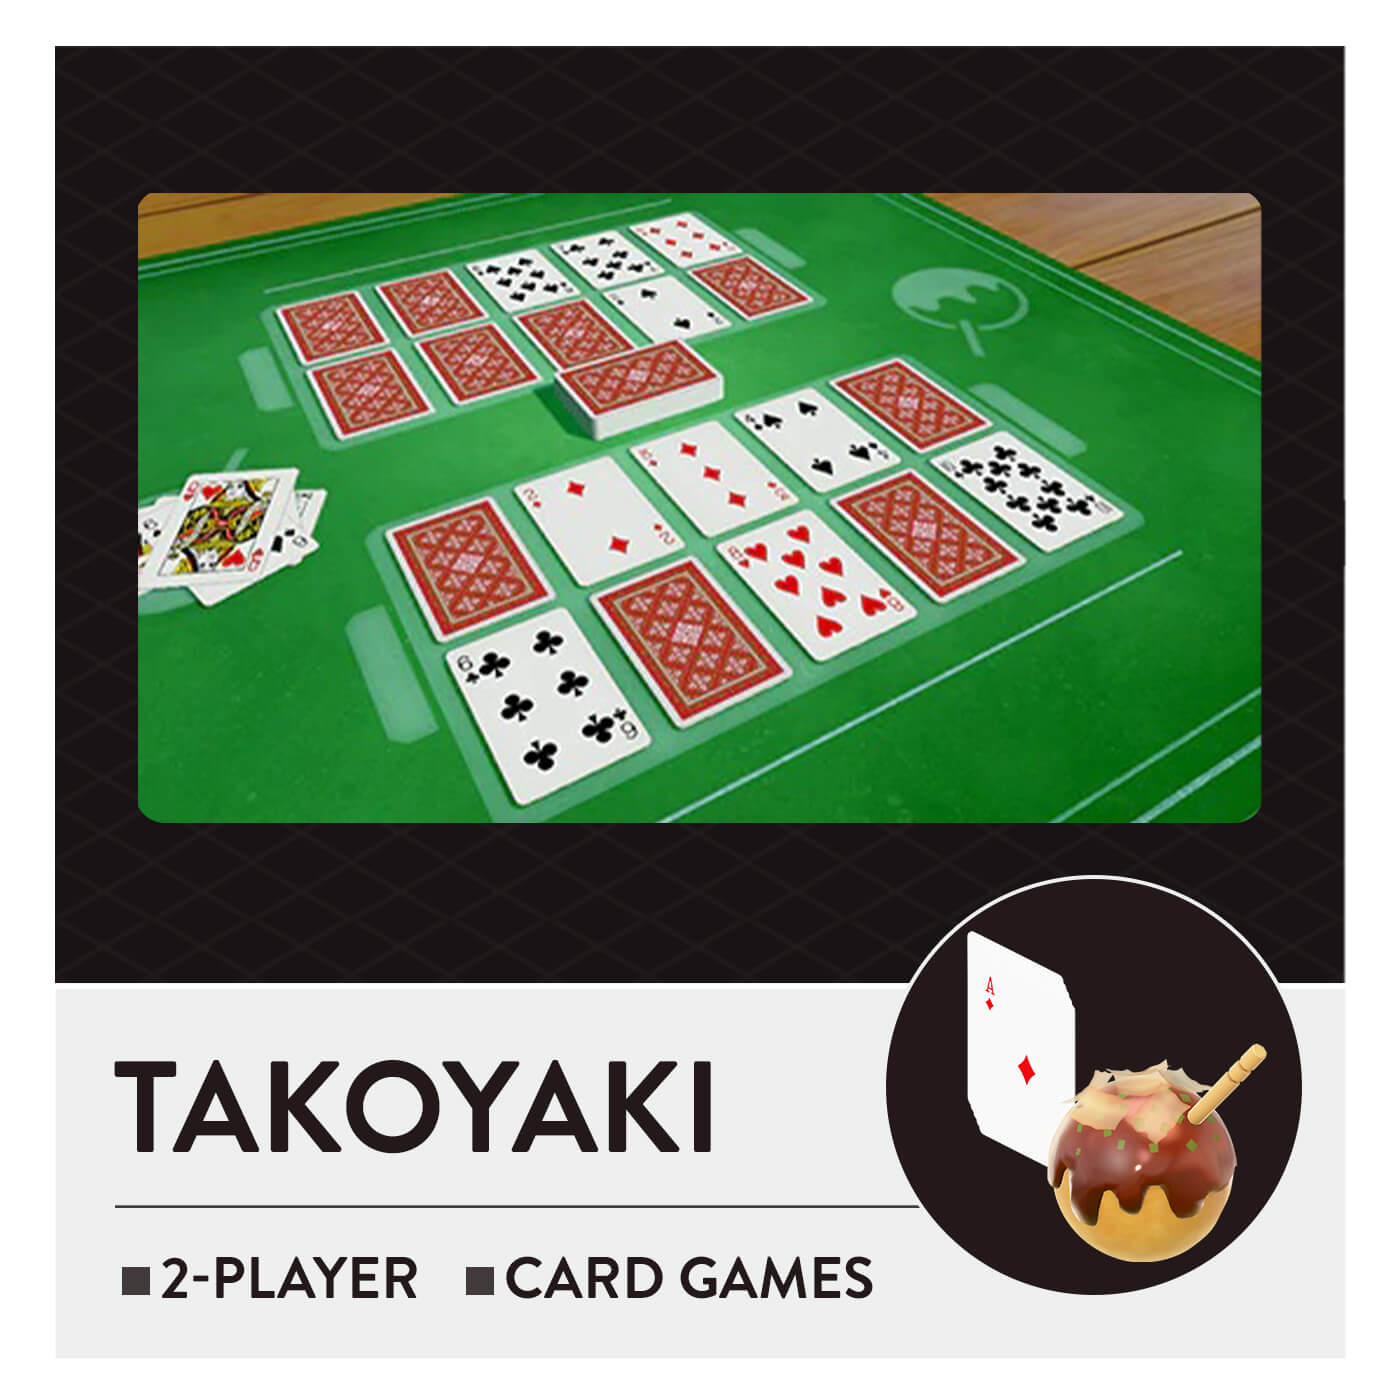 51 Worldwide Games - Takoyaki